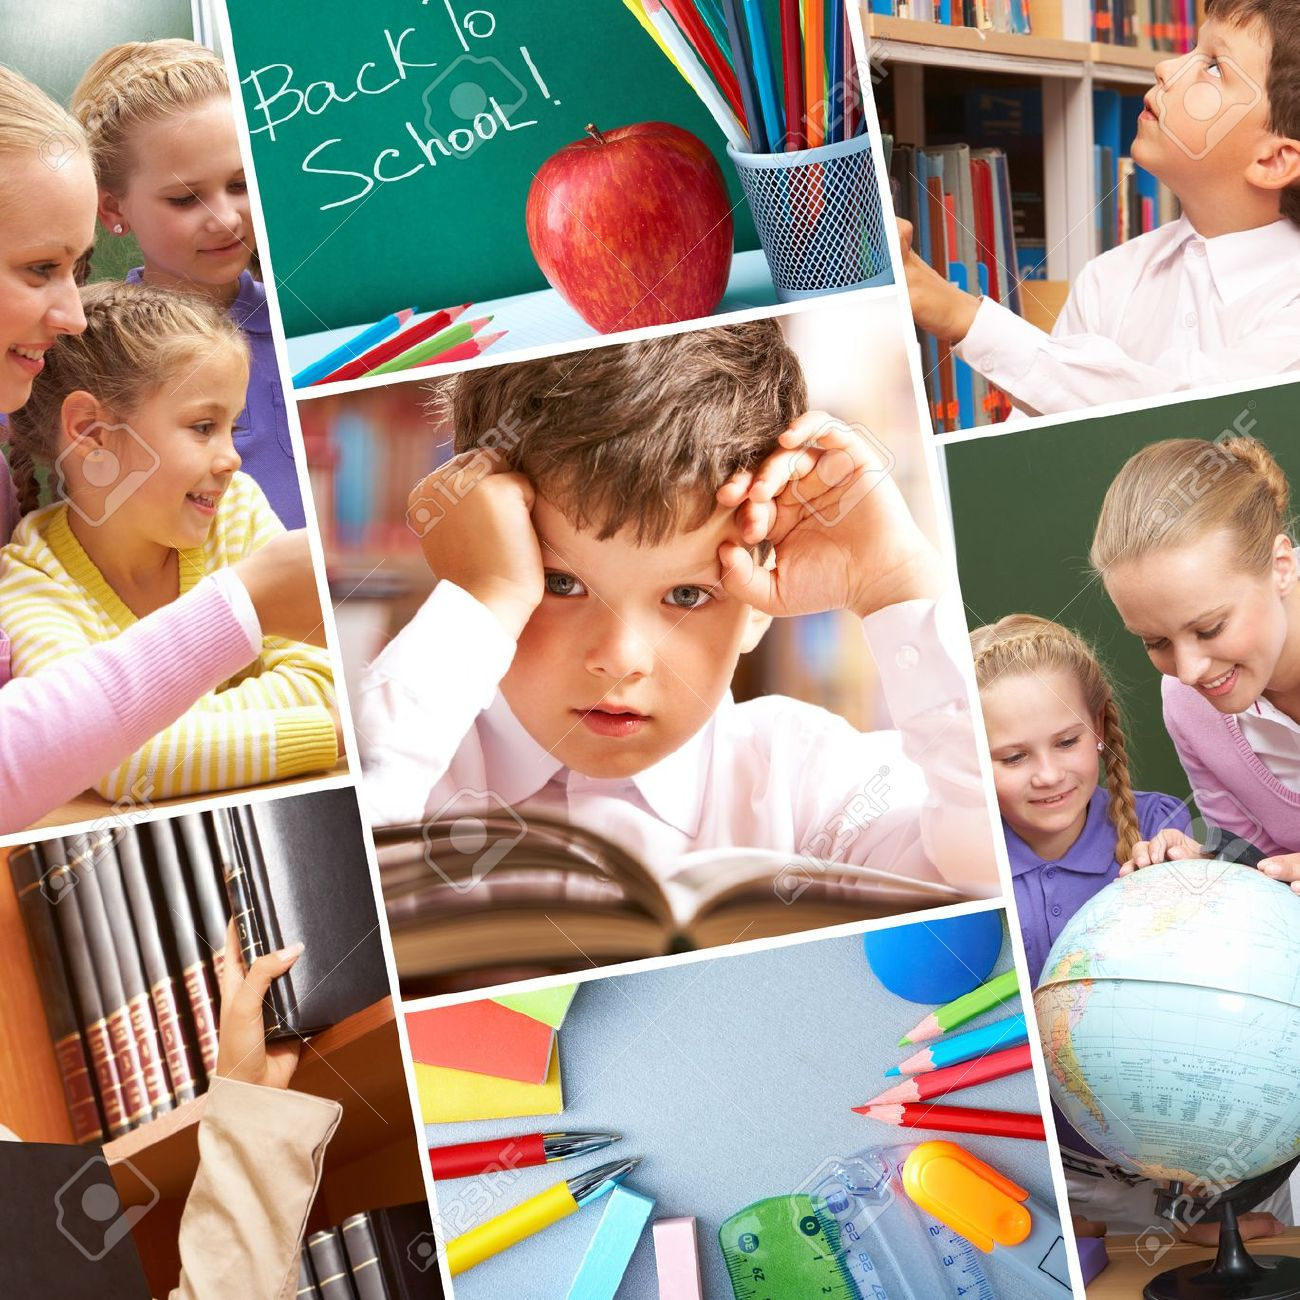 Collage of schoolchildren in studying process and education objects Stock Photo - 7601972